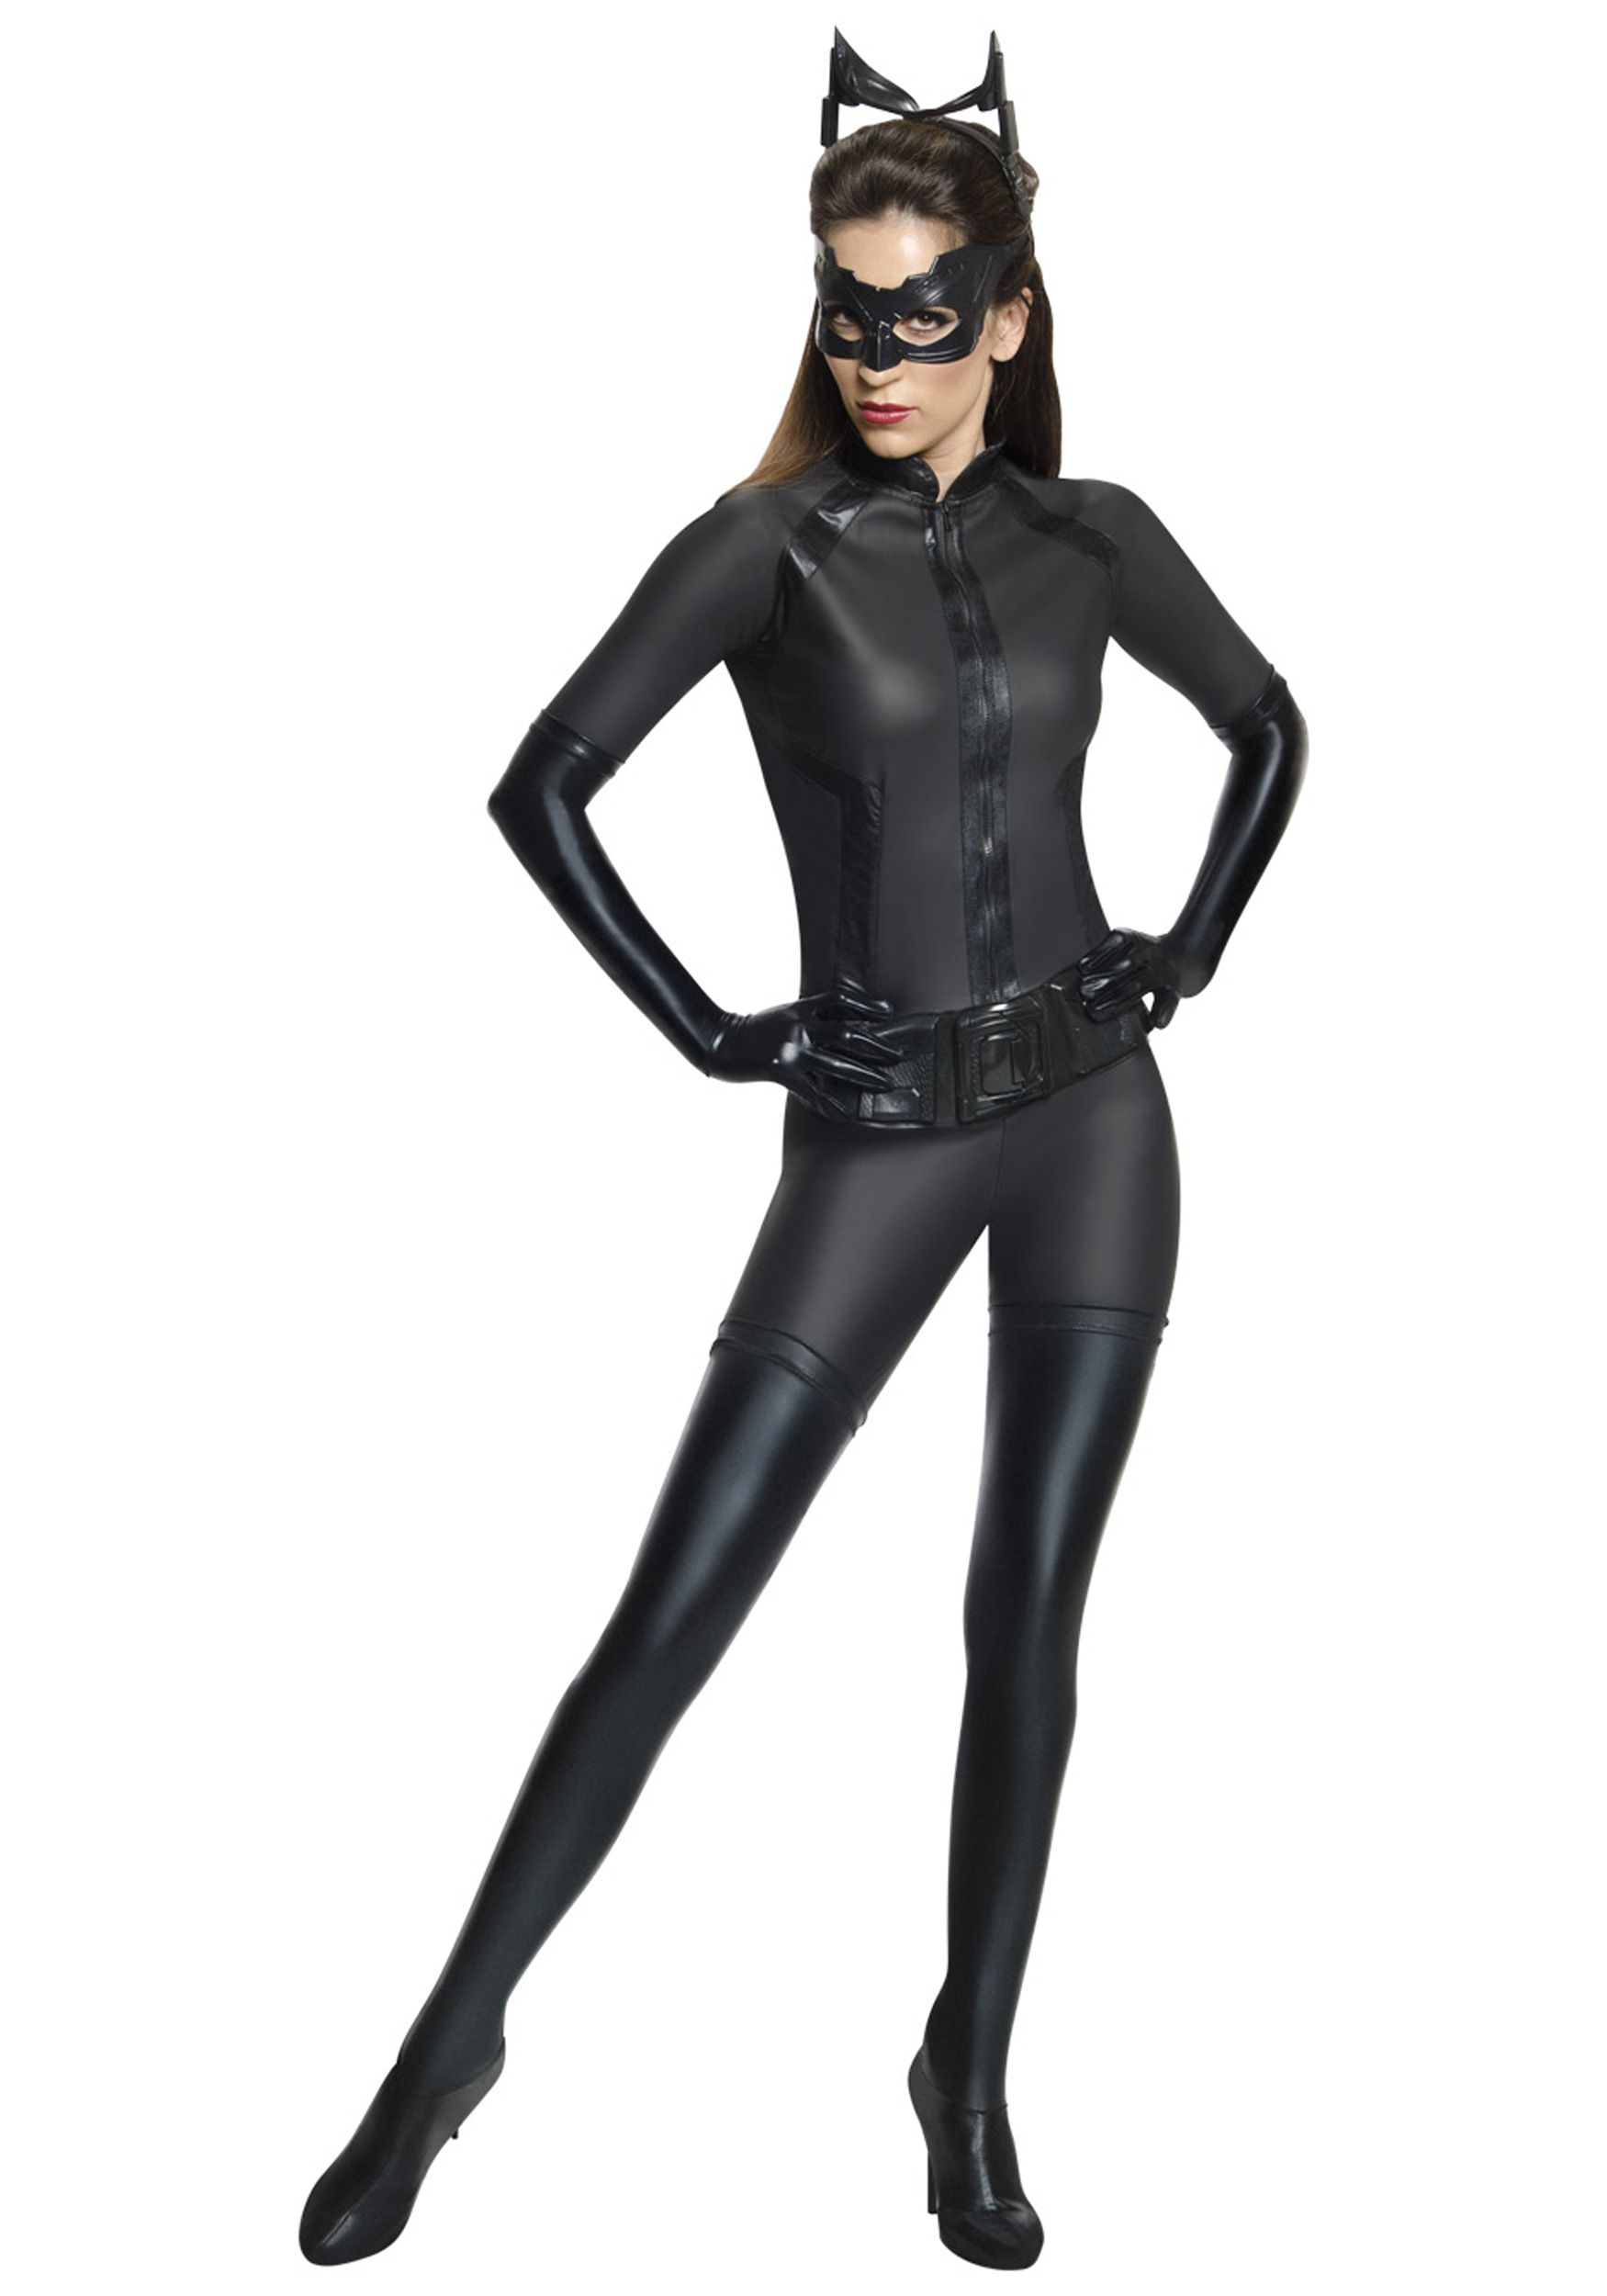 Grand Heritage Catwoman Costume   Costumes, Halloween costumes and ...